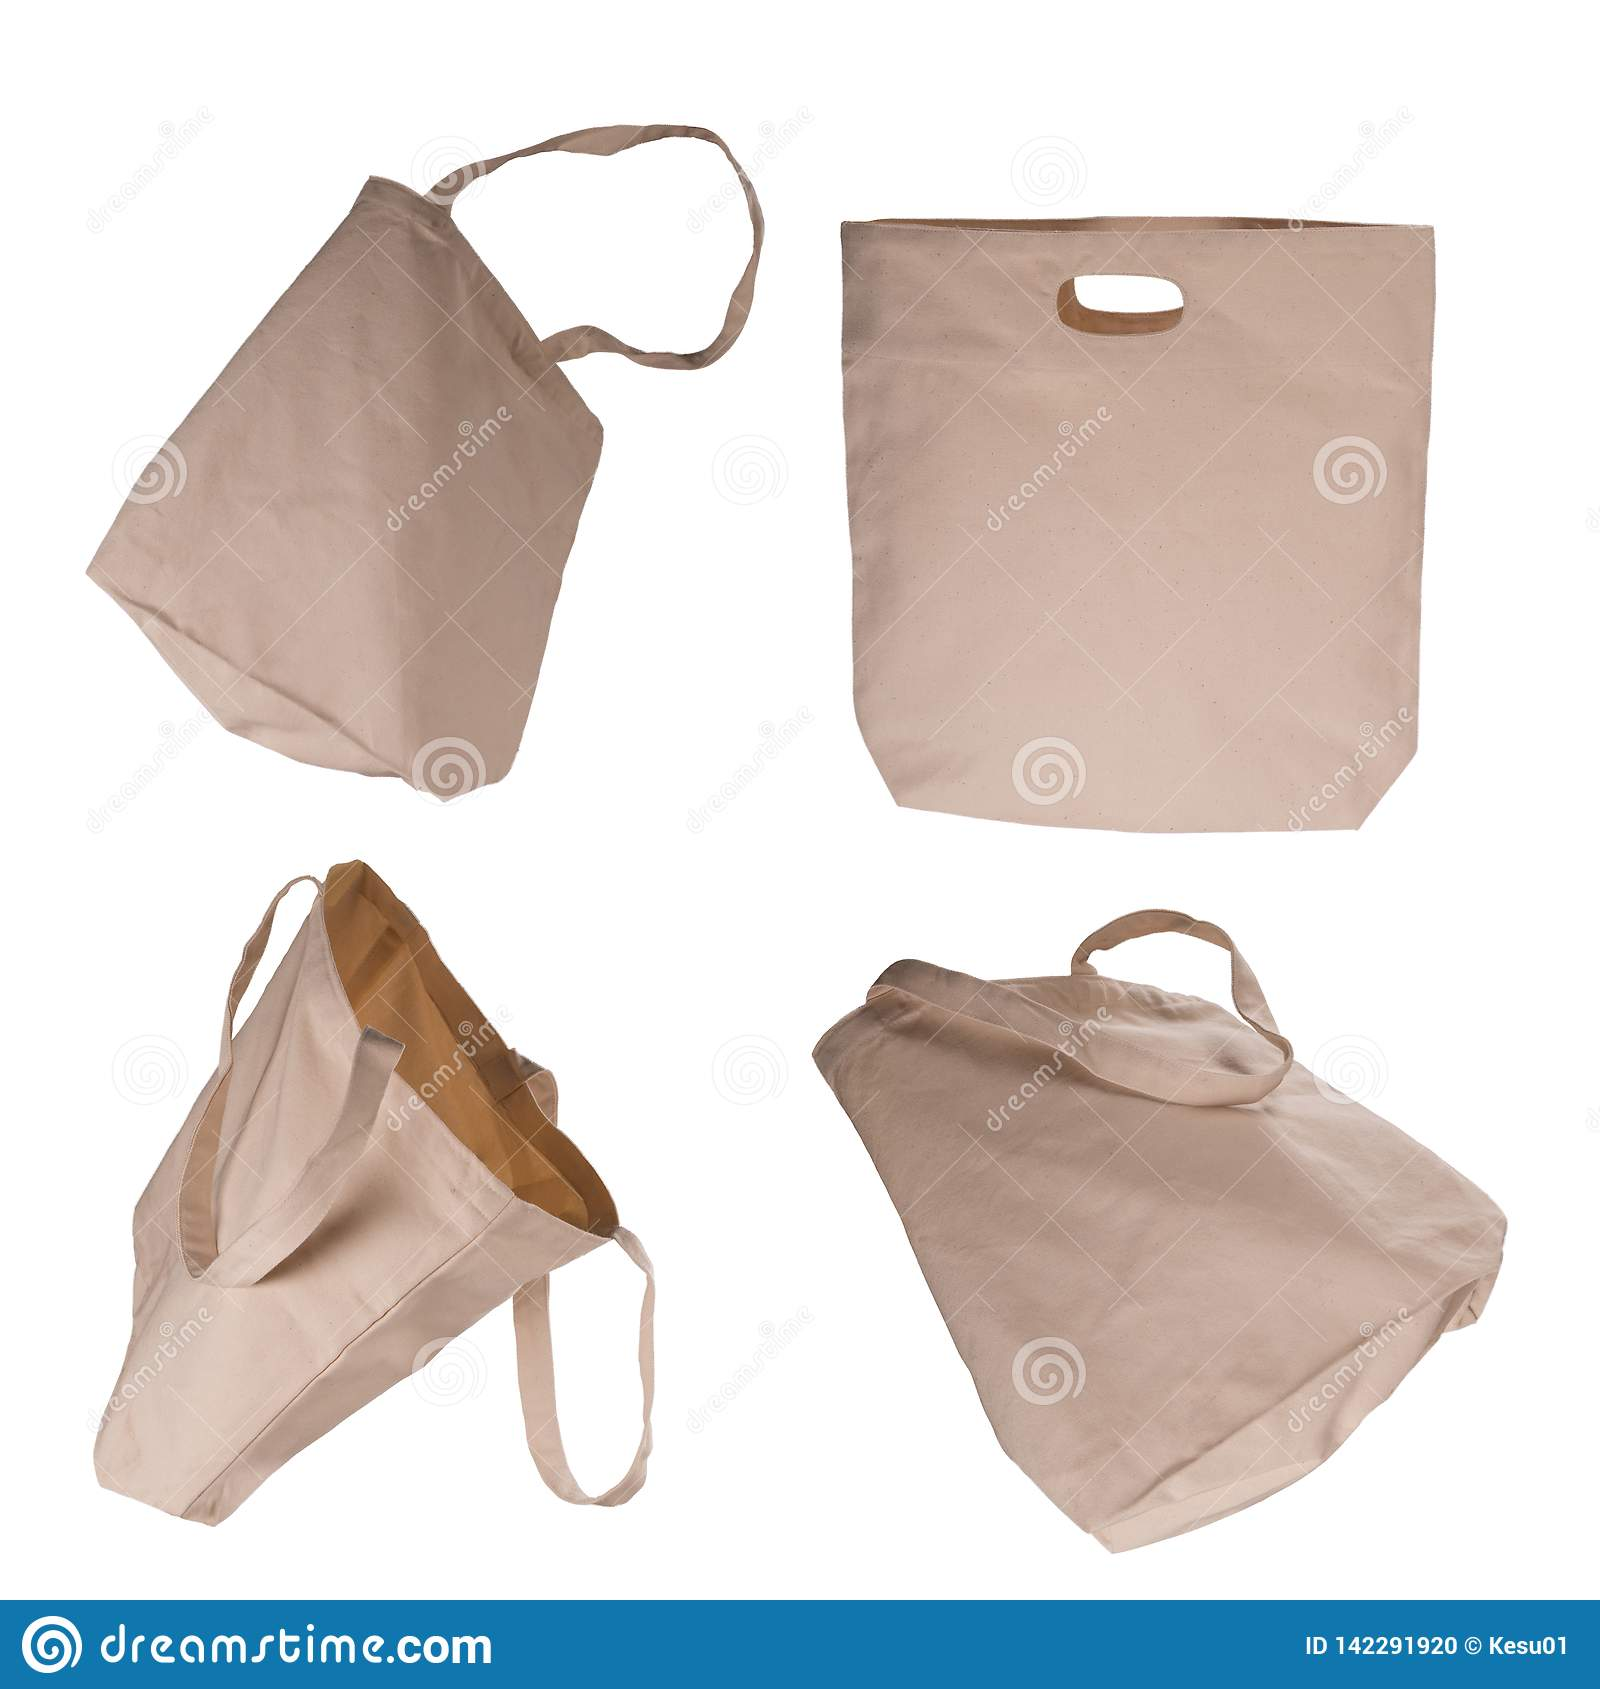 Collection of light beige cotton bags on white background.